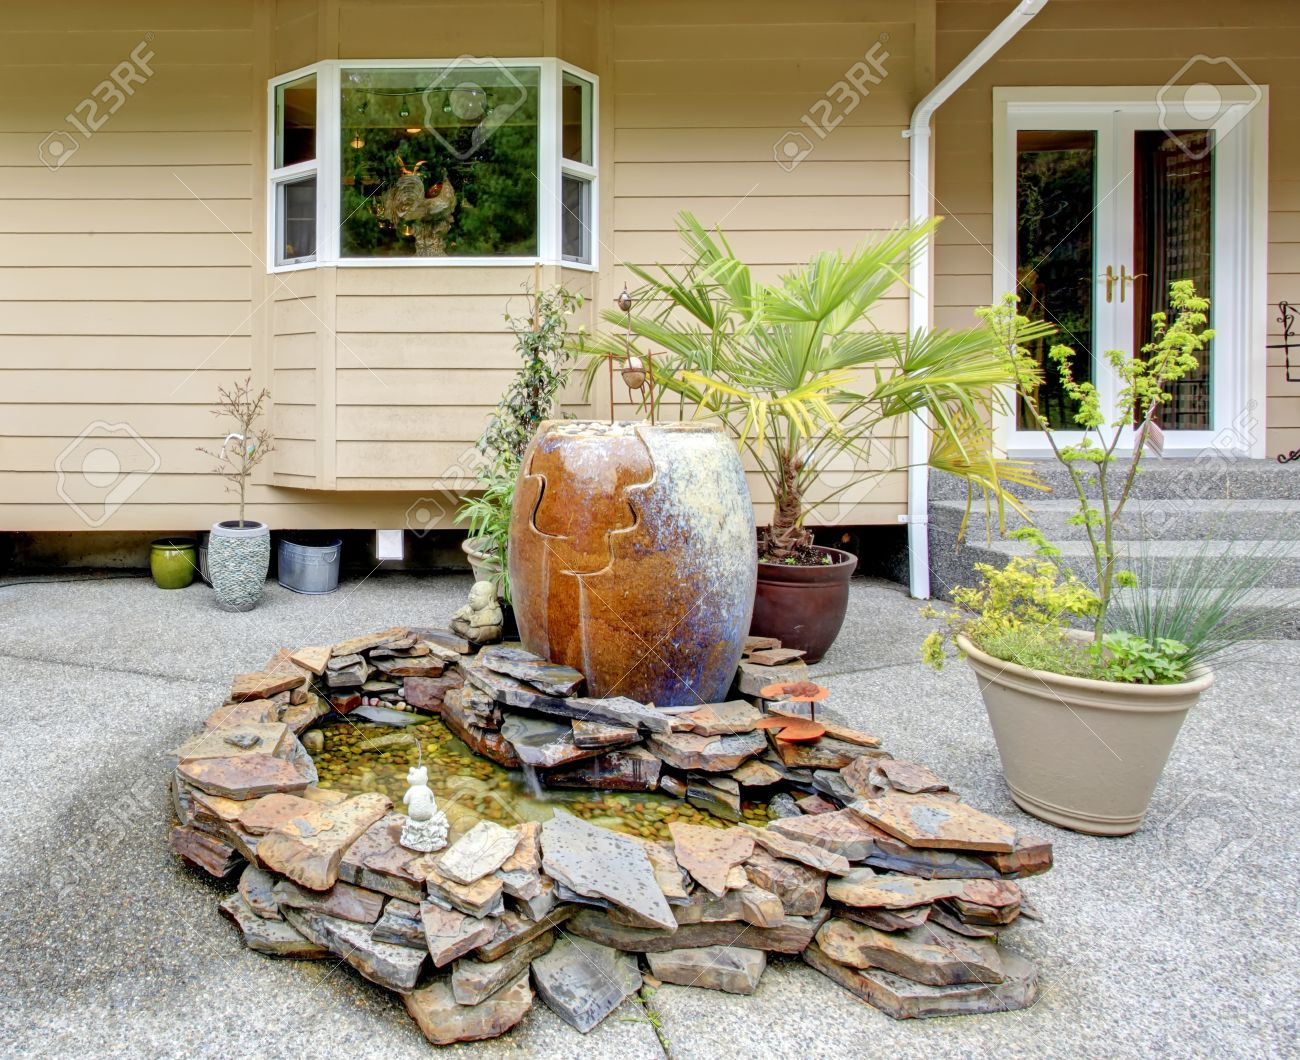 backyard porch with concrete floor and decorated rocks with big